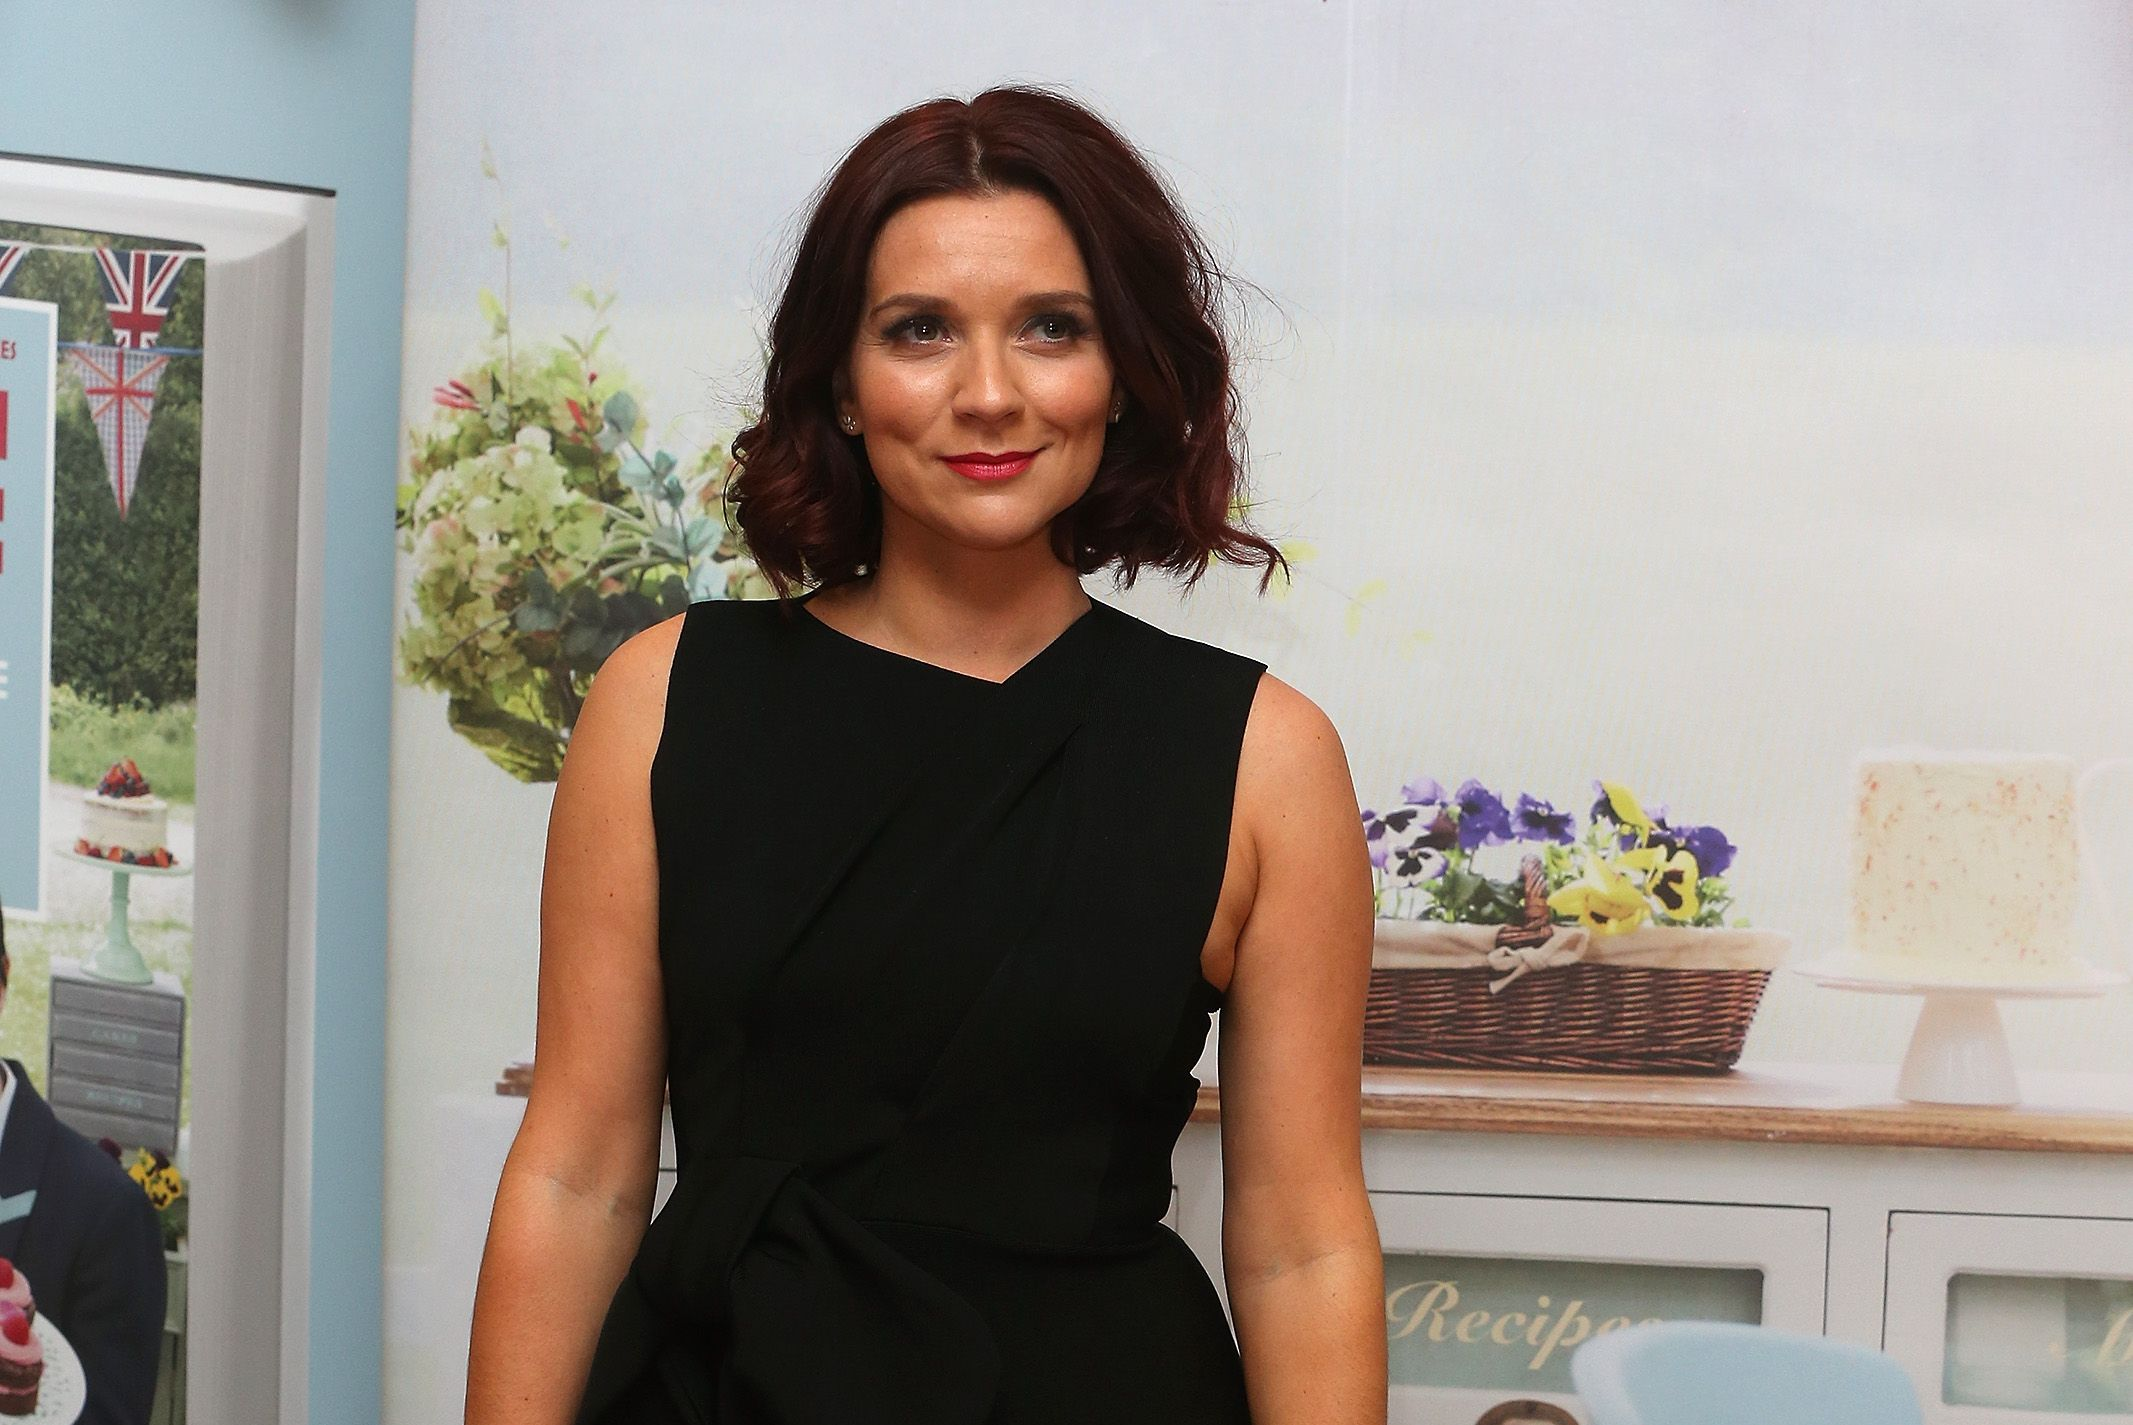 Great British Bake Off winner Candice Brown reveals surprising new career choice